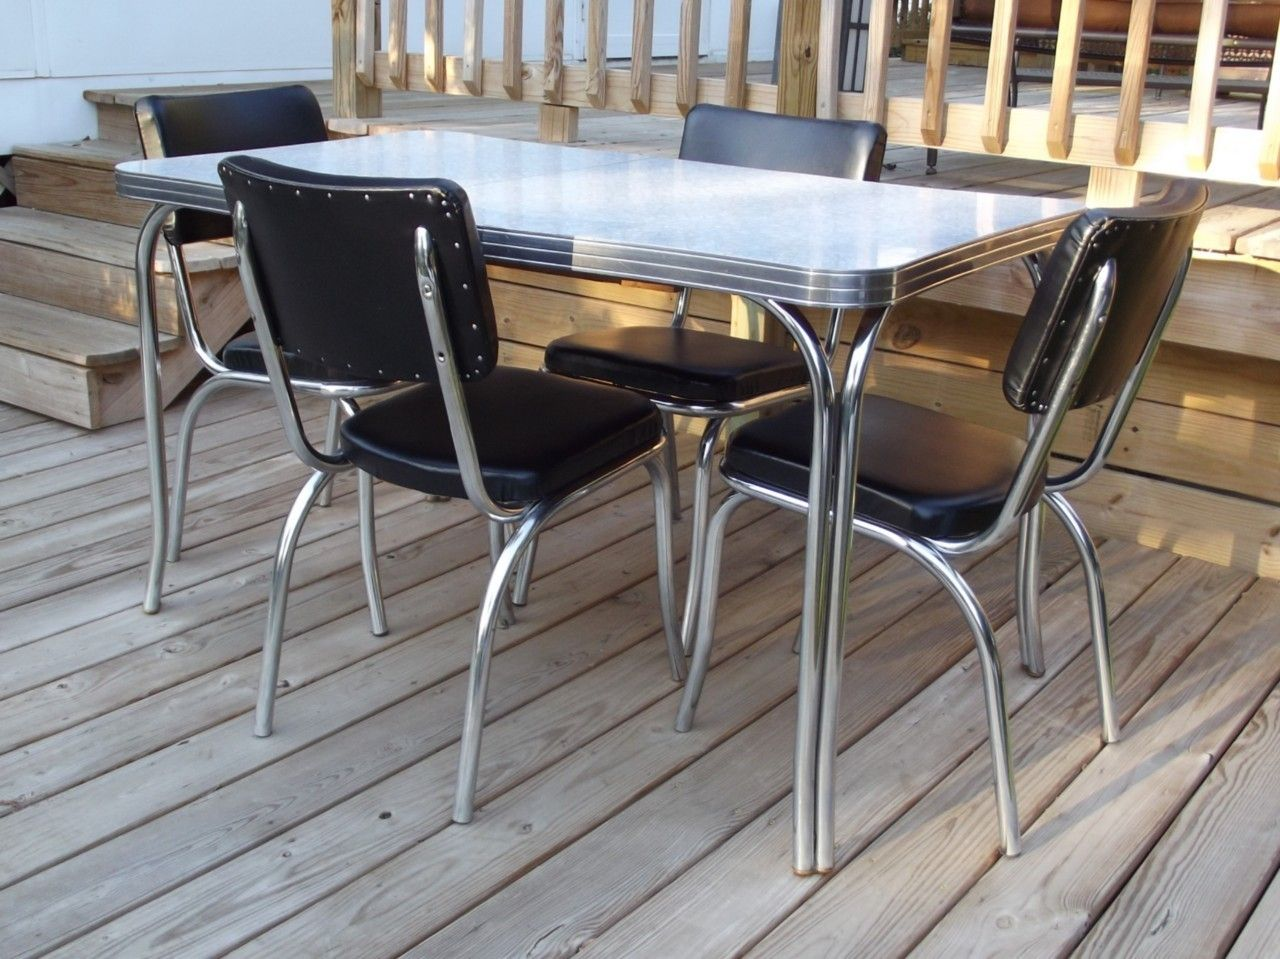 formica tables retro kitchen chairs Vintage Retro s Kuehne Dining Kitchen Formica Chrome Table 4 Chairs Eames